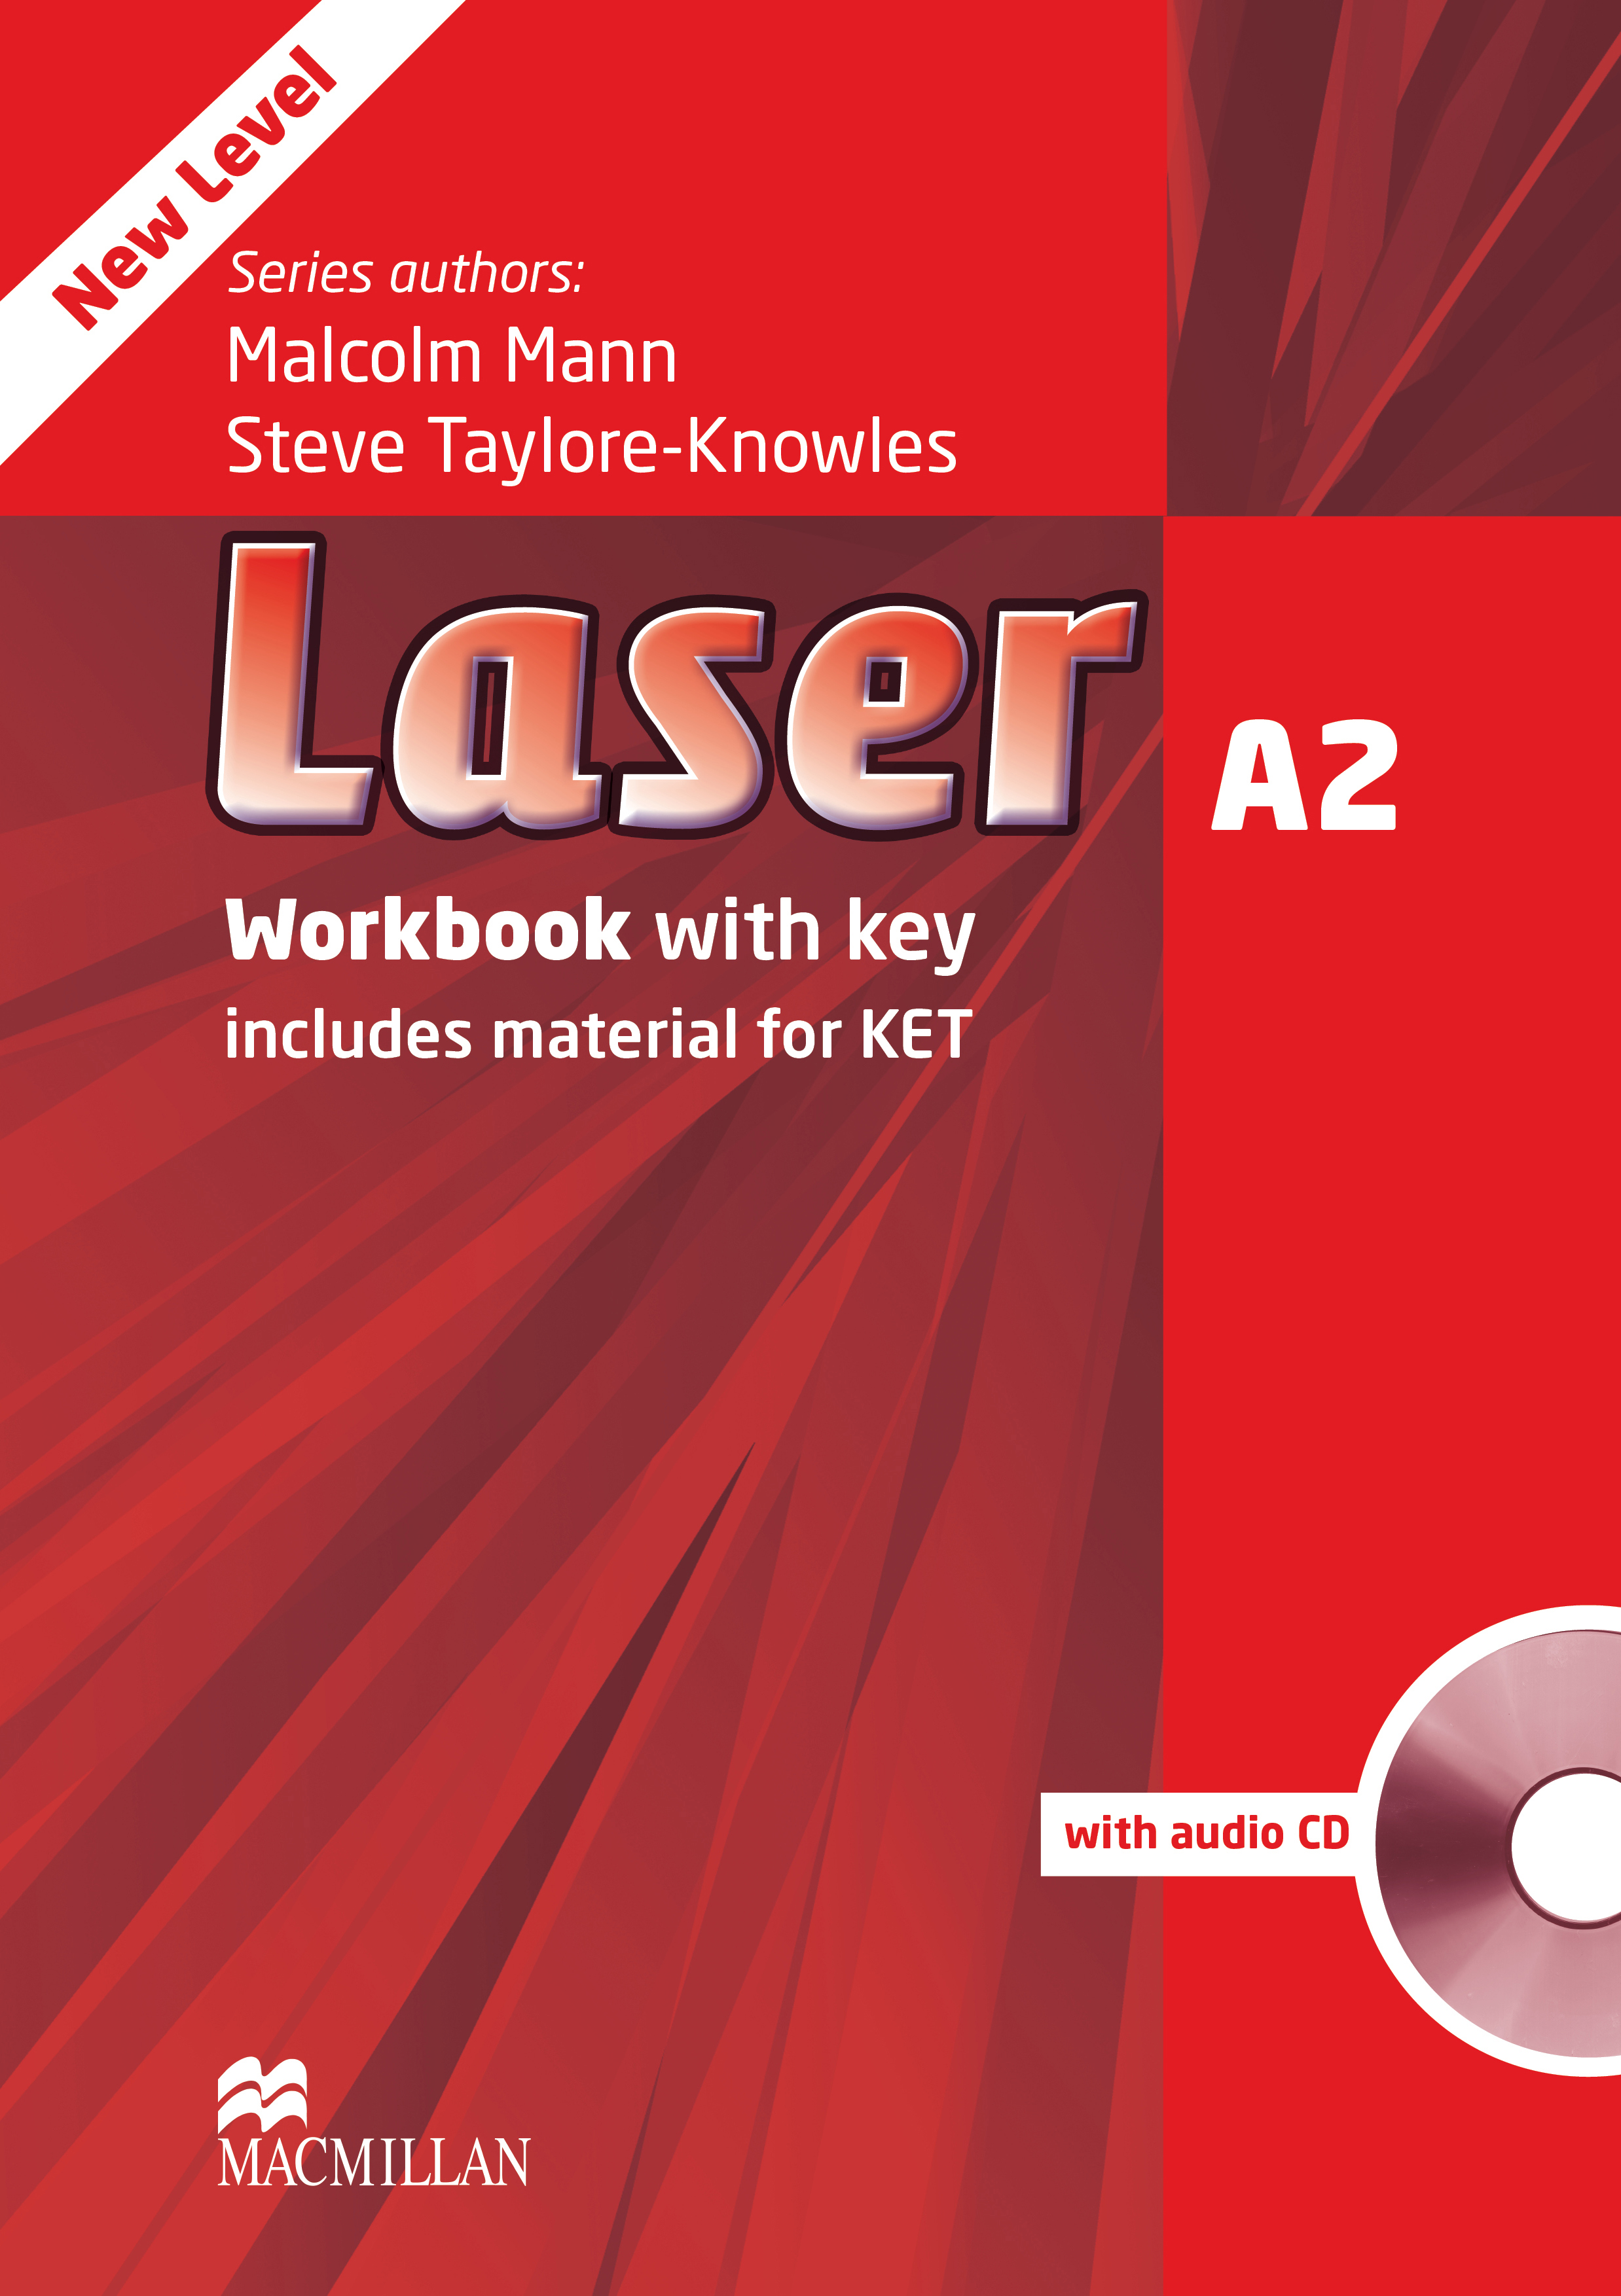 Laser A2 Third Edition Workbook with Key and CD Pack